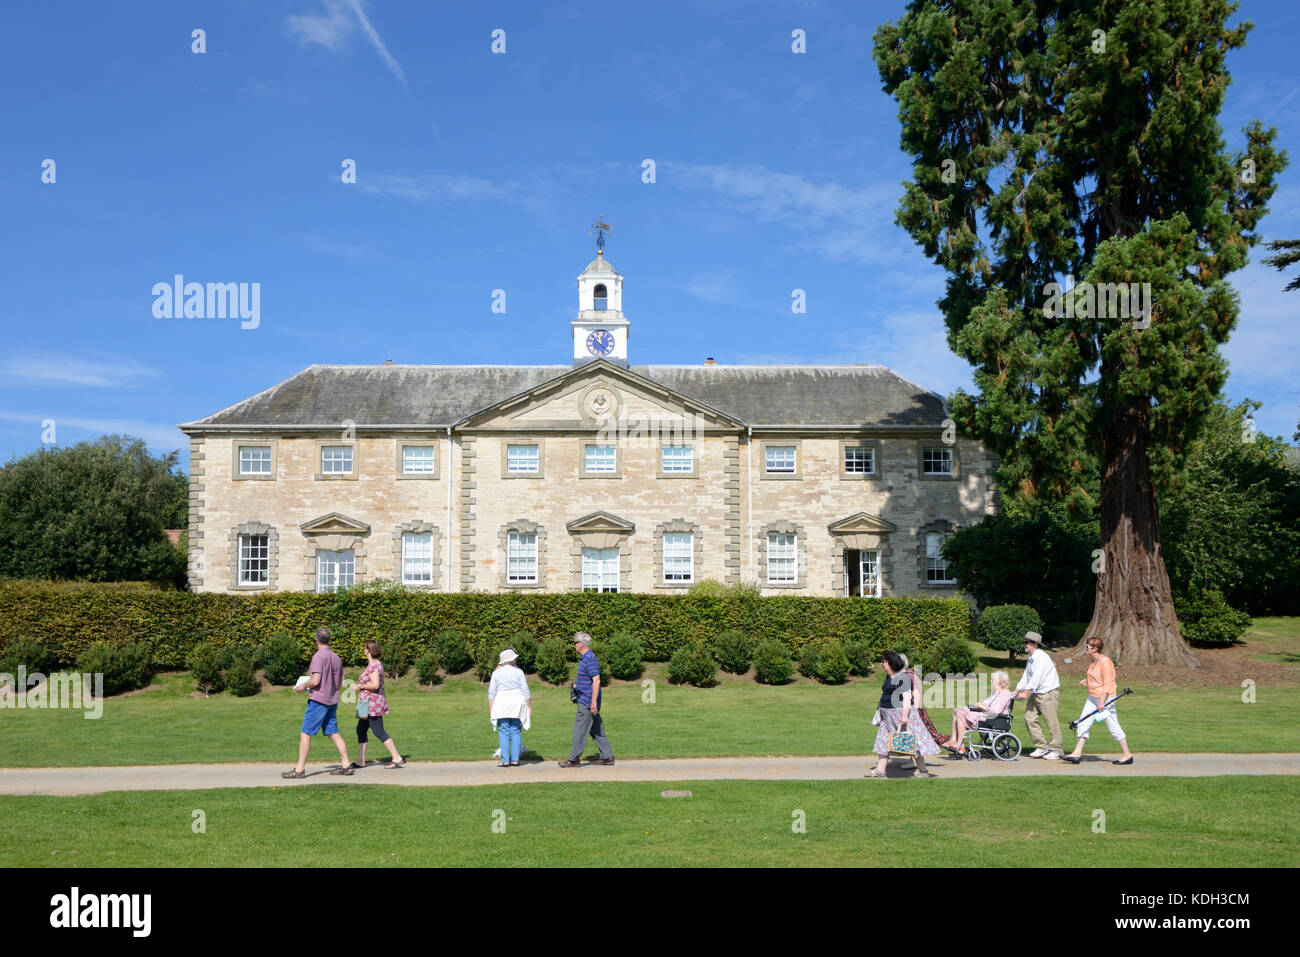 Visitors Walk Past the Stable Block (1735) at Compton Verney House, Kineton, Warwickshire, England - Stock Image